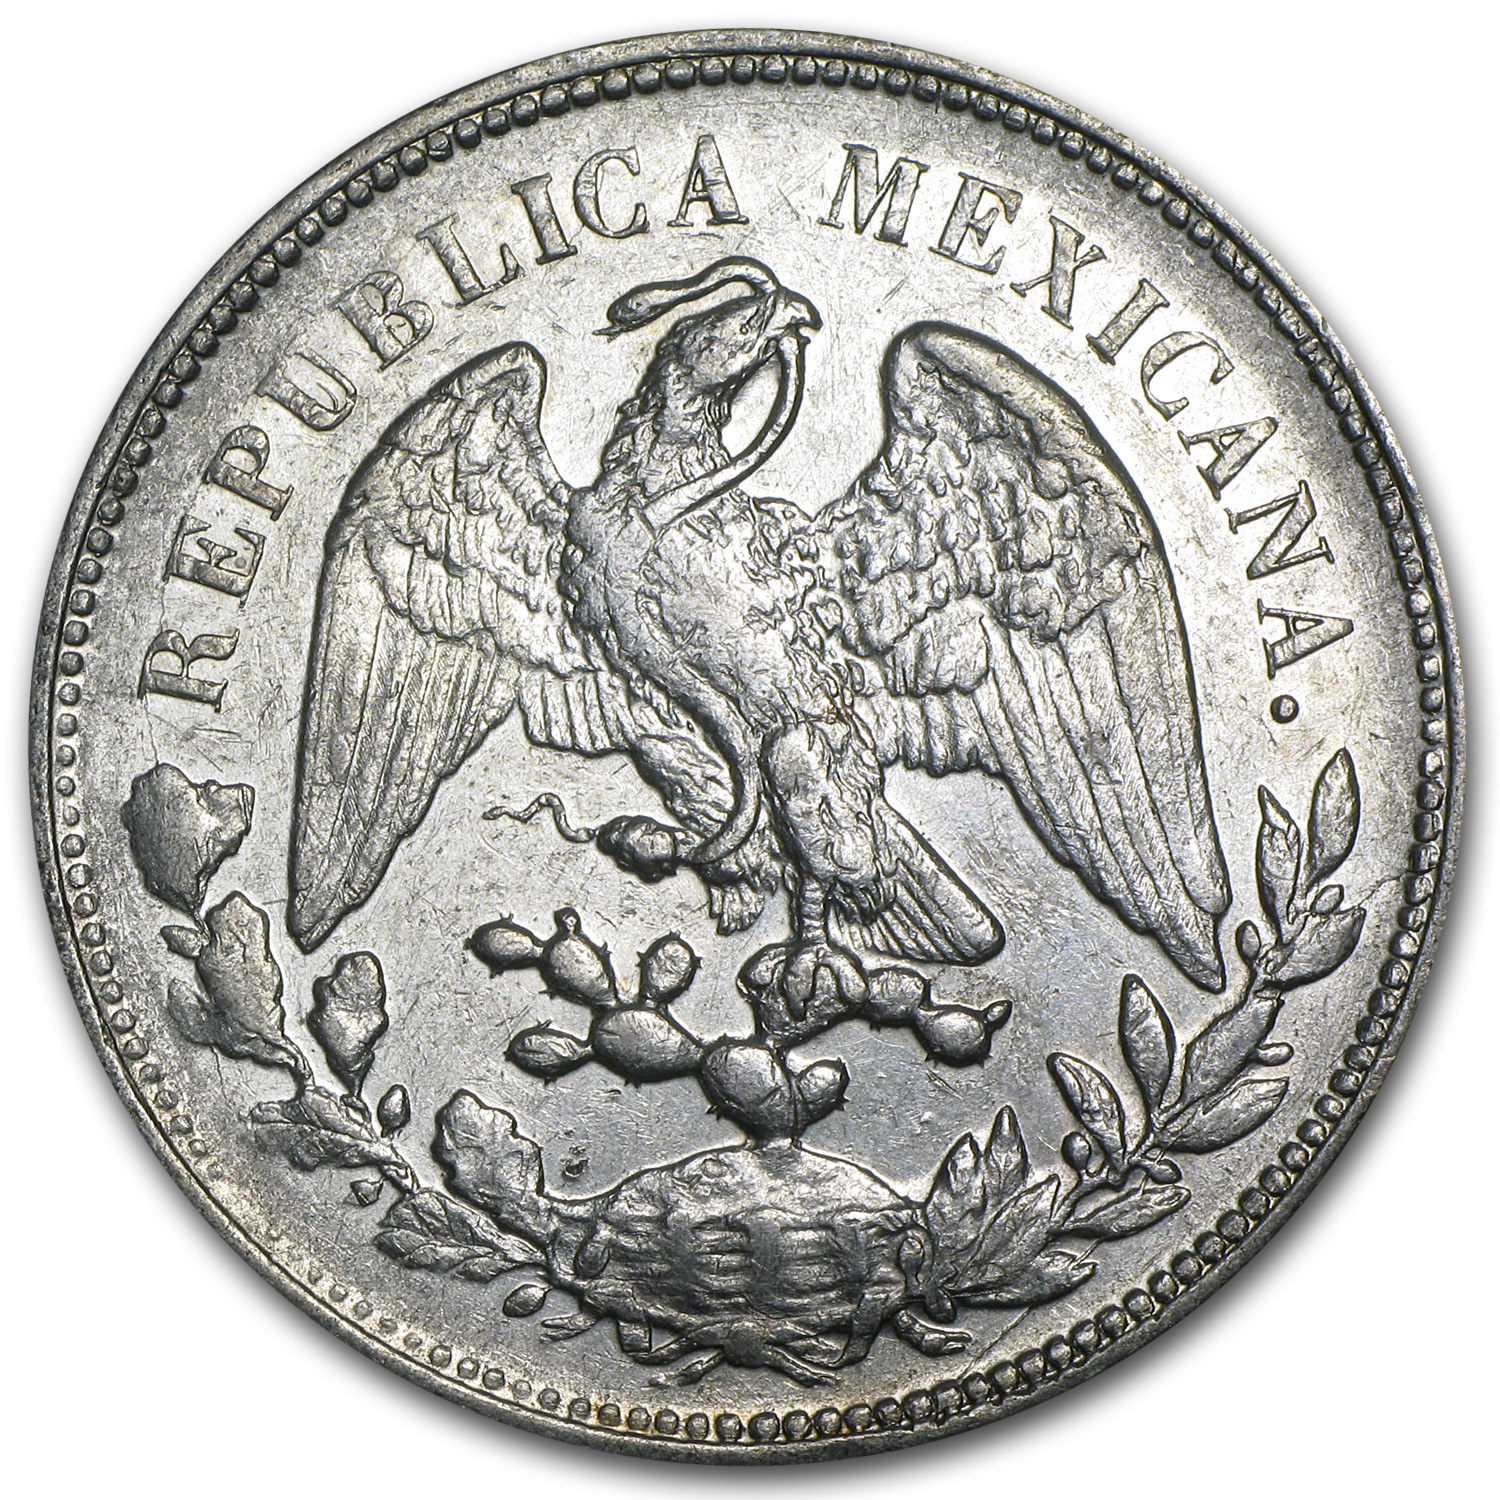 1898-1909 Mexican Silver 1 Peso (AU or Better) ASW .7860 oz